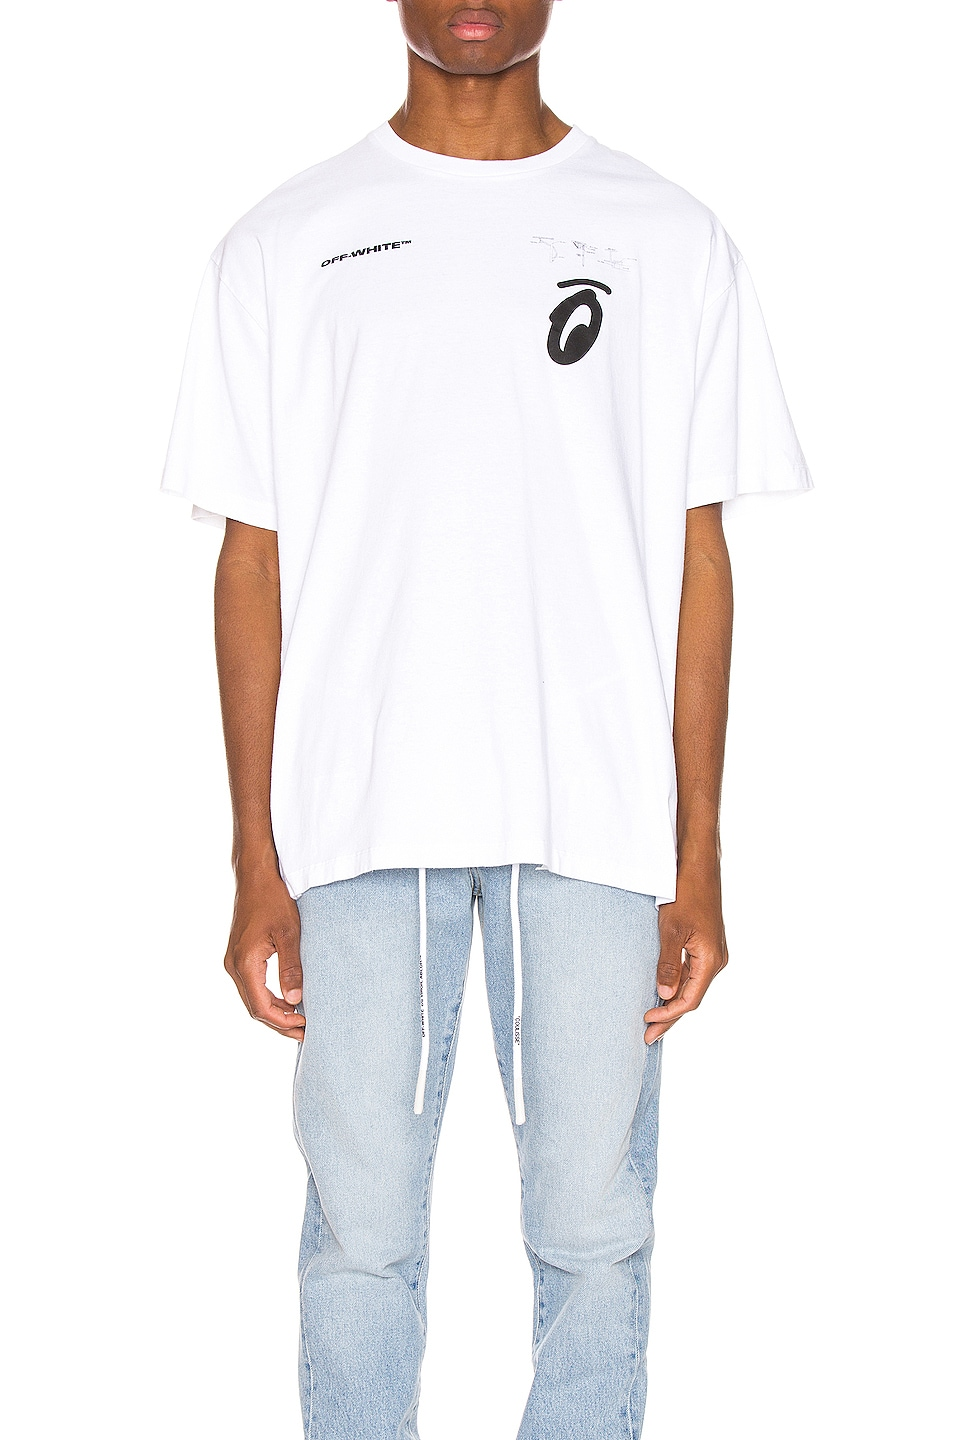 Image 2 of OFF-WHITE Splitted Arrows Oversized Tee in White & Black